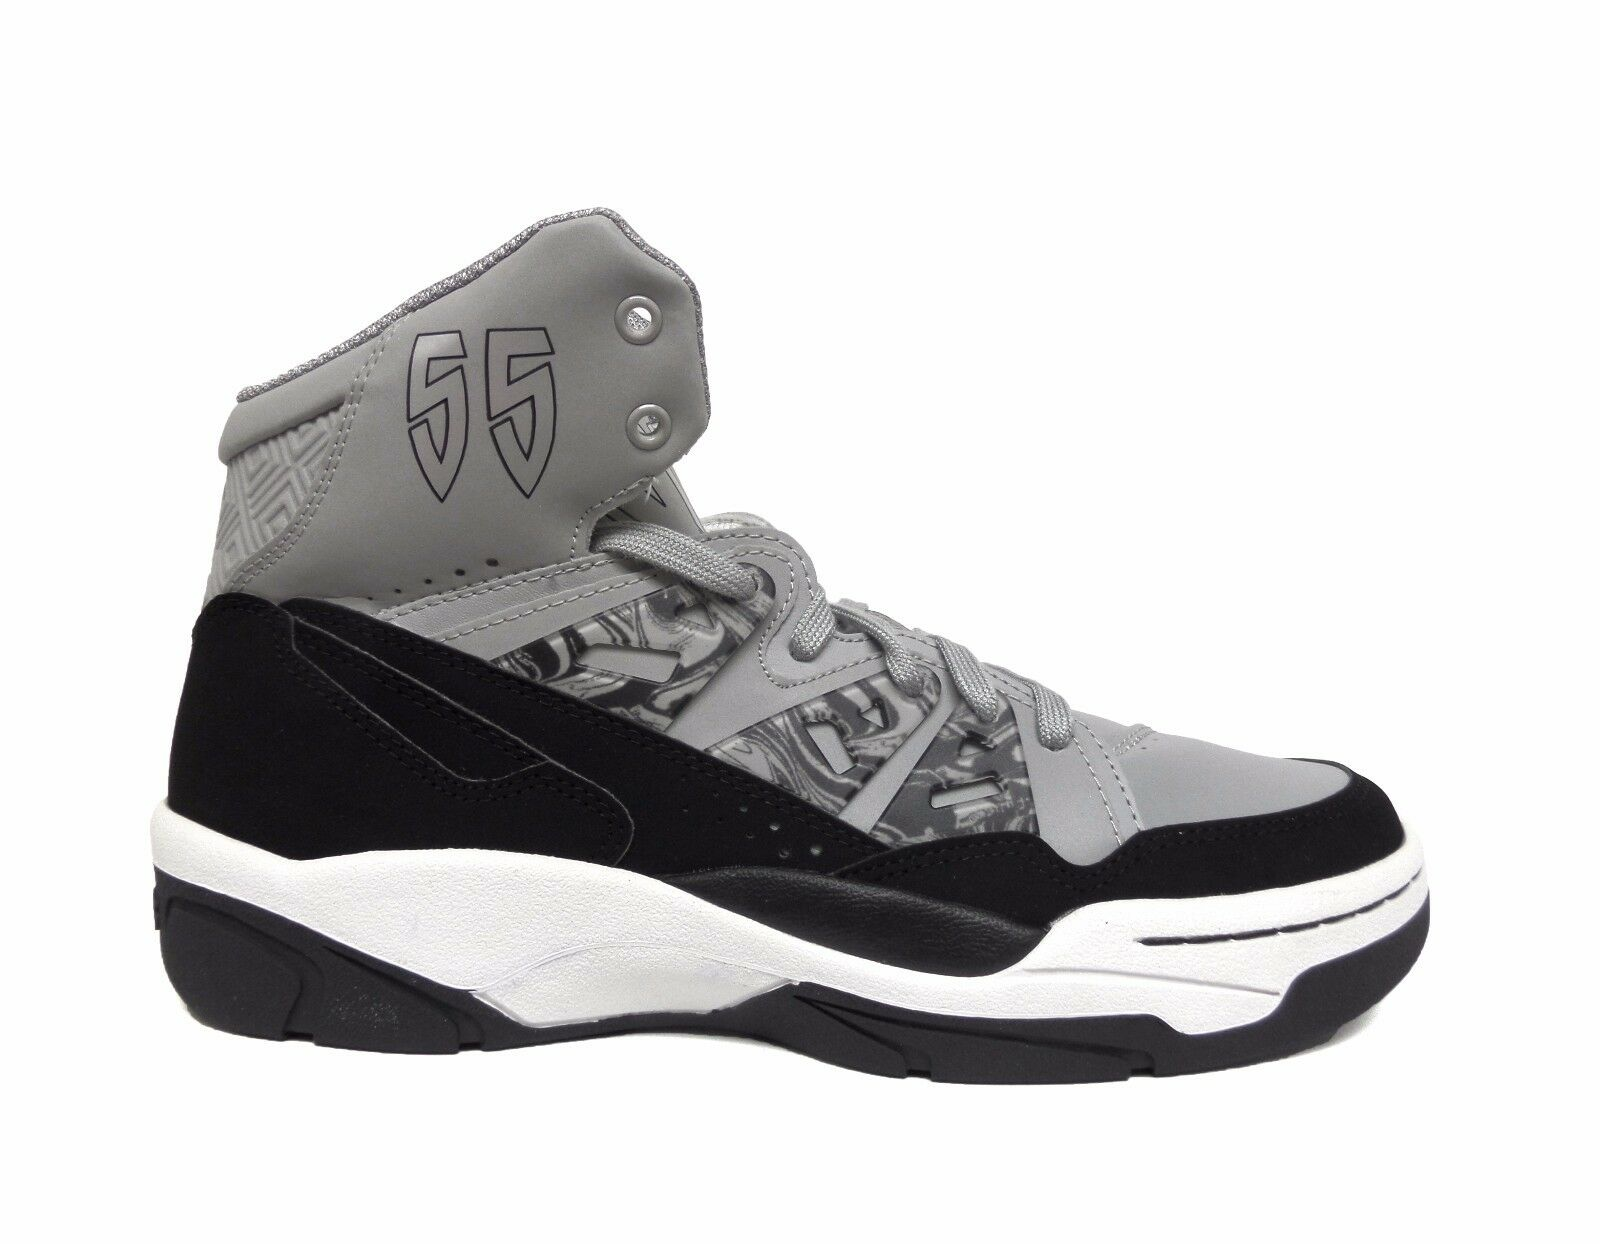 Adidas Men's Originals Mutombo Basketball Shoes Grey/Black C75209 a2